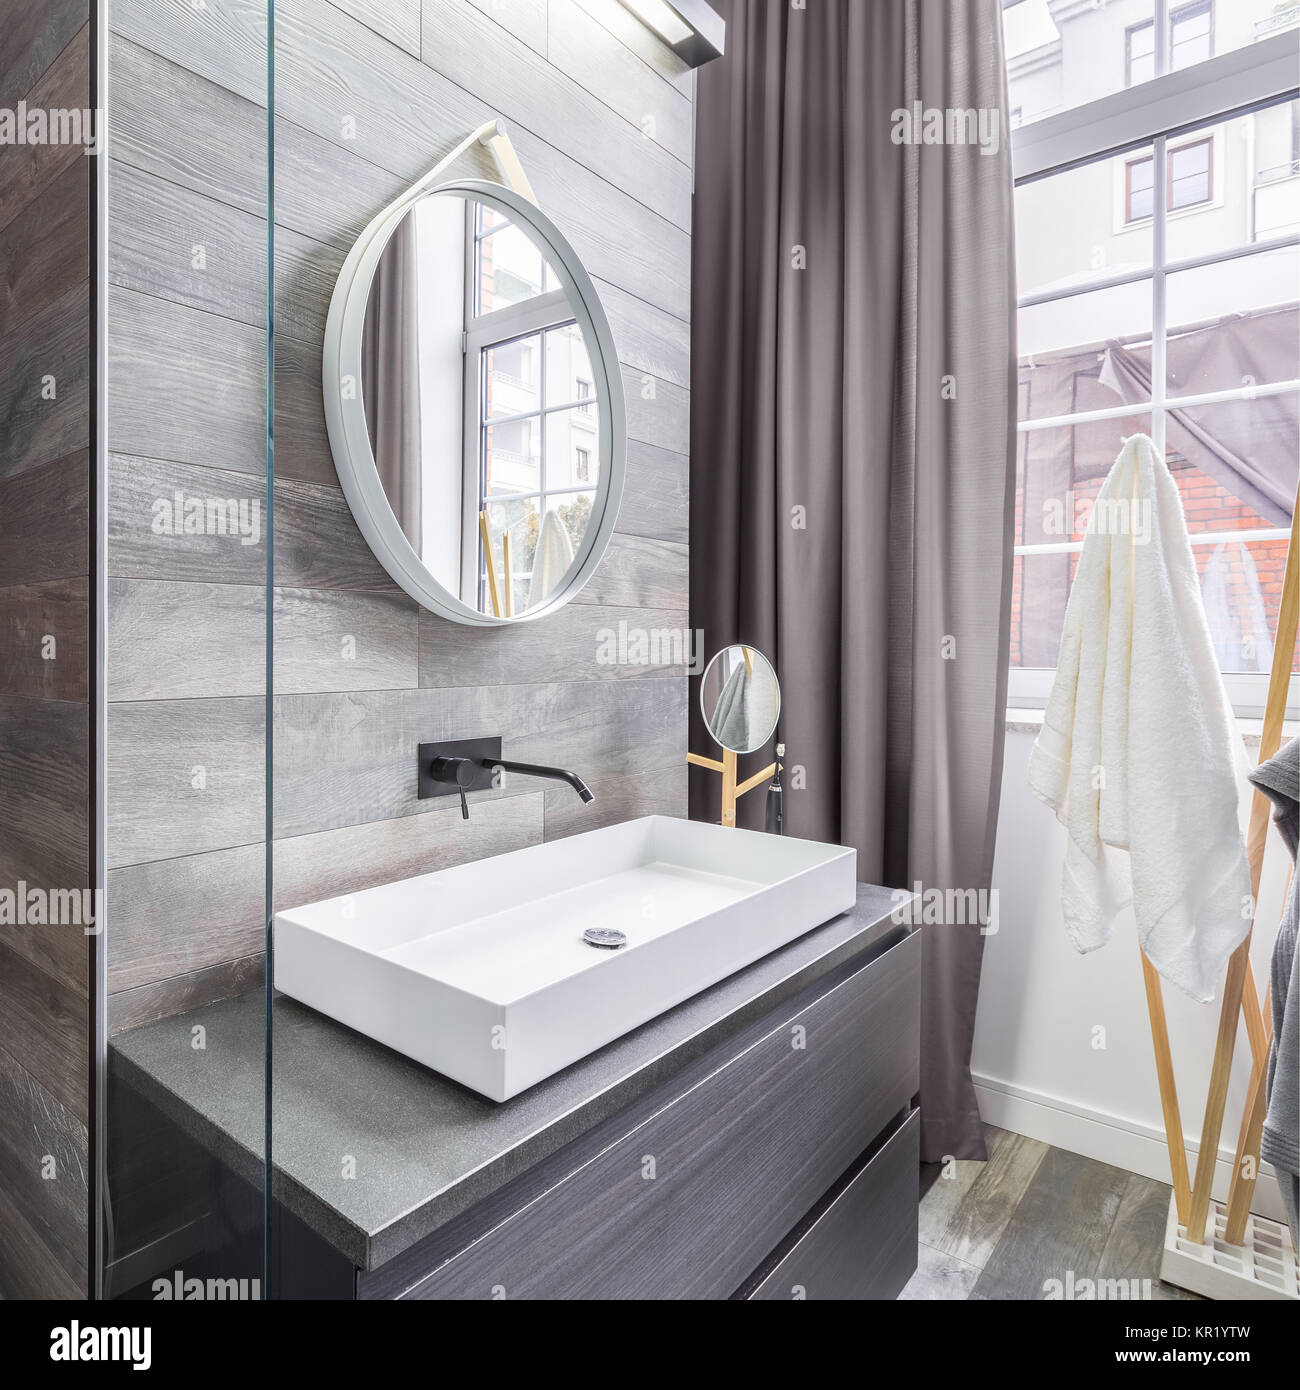 Elegant Design Bathroom With Wooden Walls White Basin And Round Stock Photo Alamy